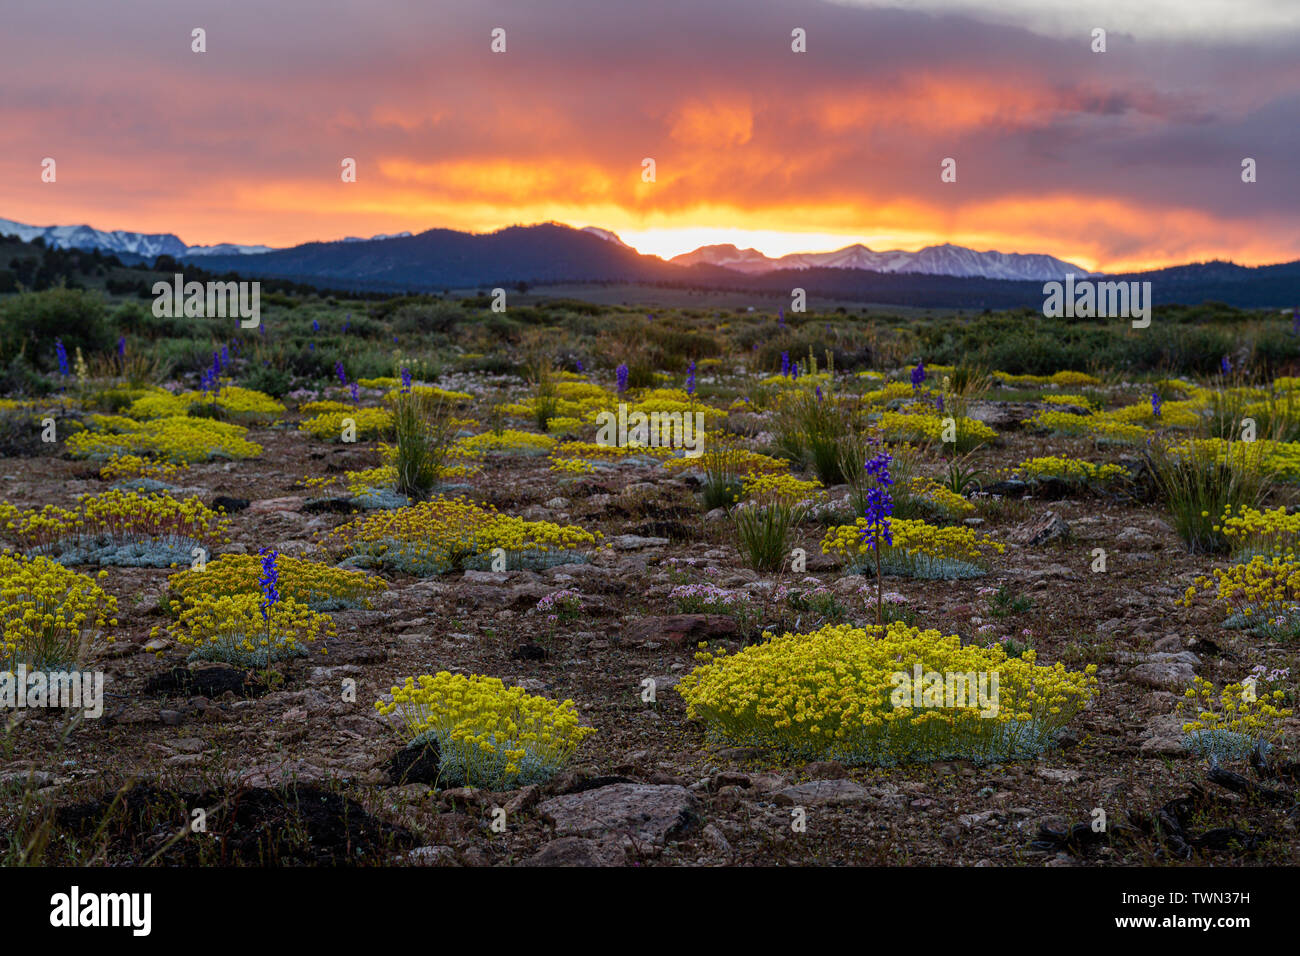 Sulfur Buckwheat and Larkspur mix in the high desert at sunset in Long Valley near Mammoth Lakes along scenic highway 395 in the Eastern Sierra, Calif Stock Photo